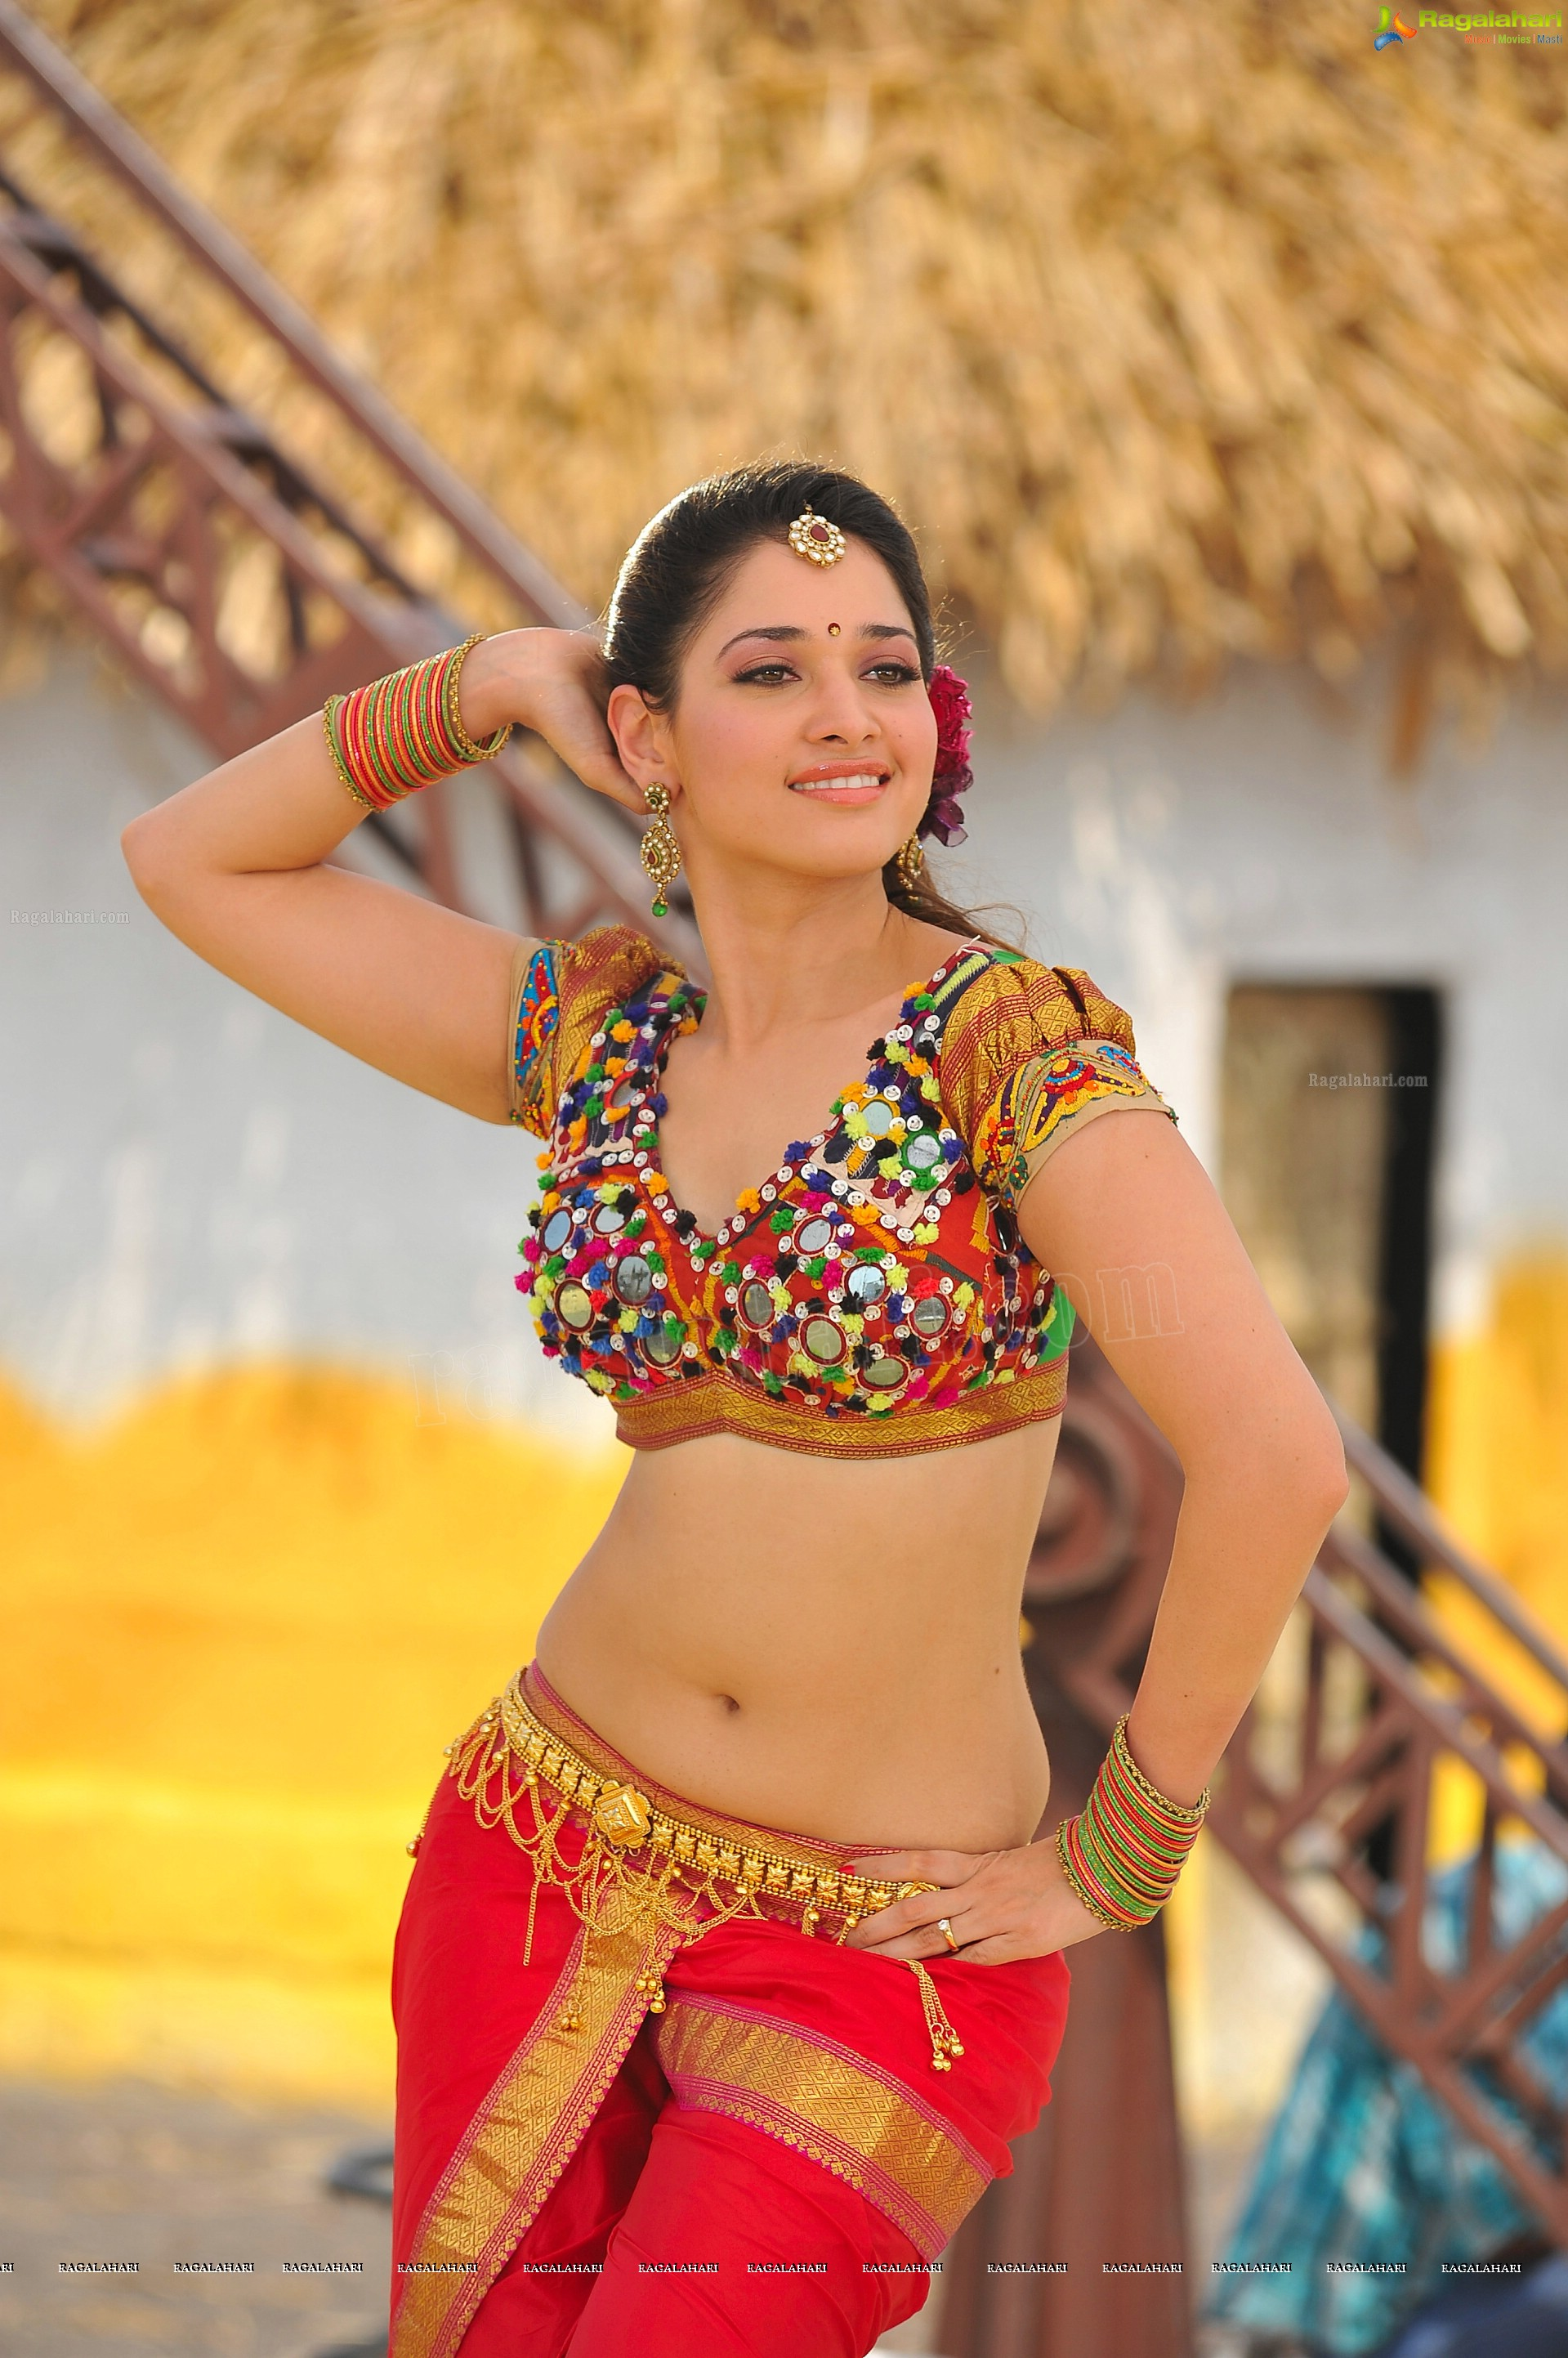 exclusive: tamanna hot curves photos (high definition)